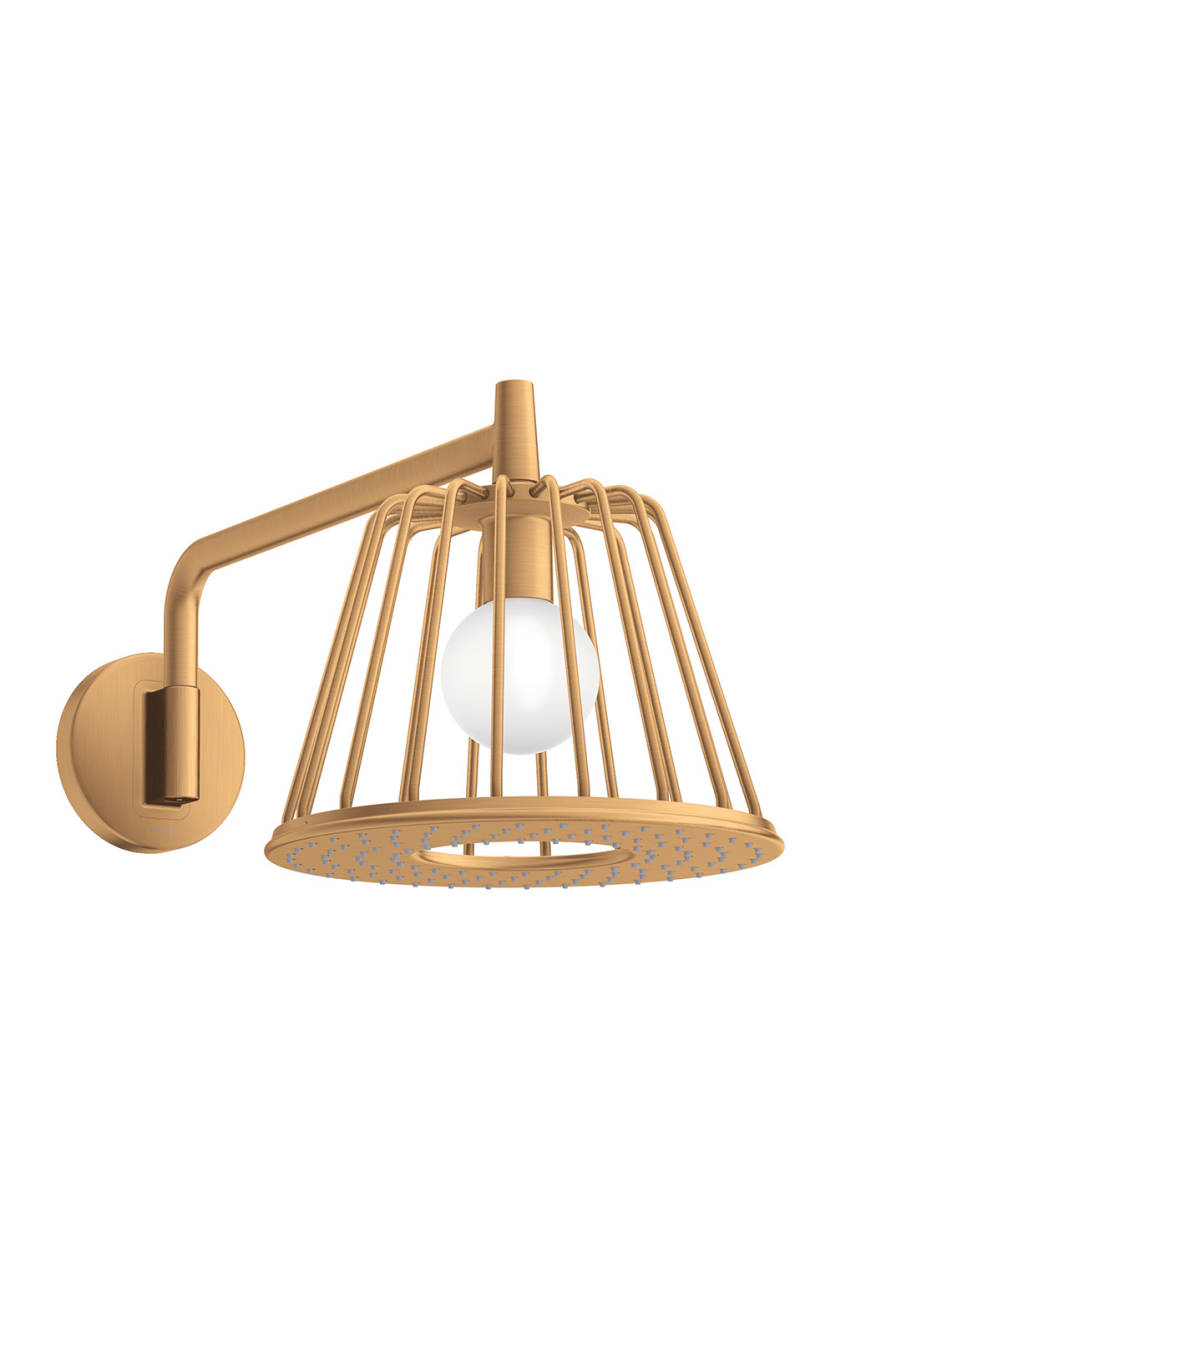 LampShower 275 1jet with shower arm, Brushed Gold Optic, 26031250